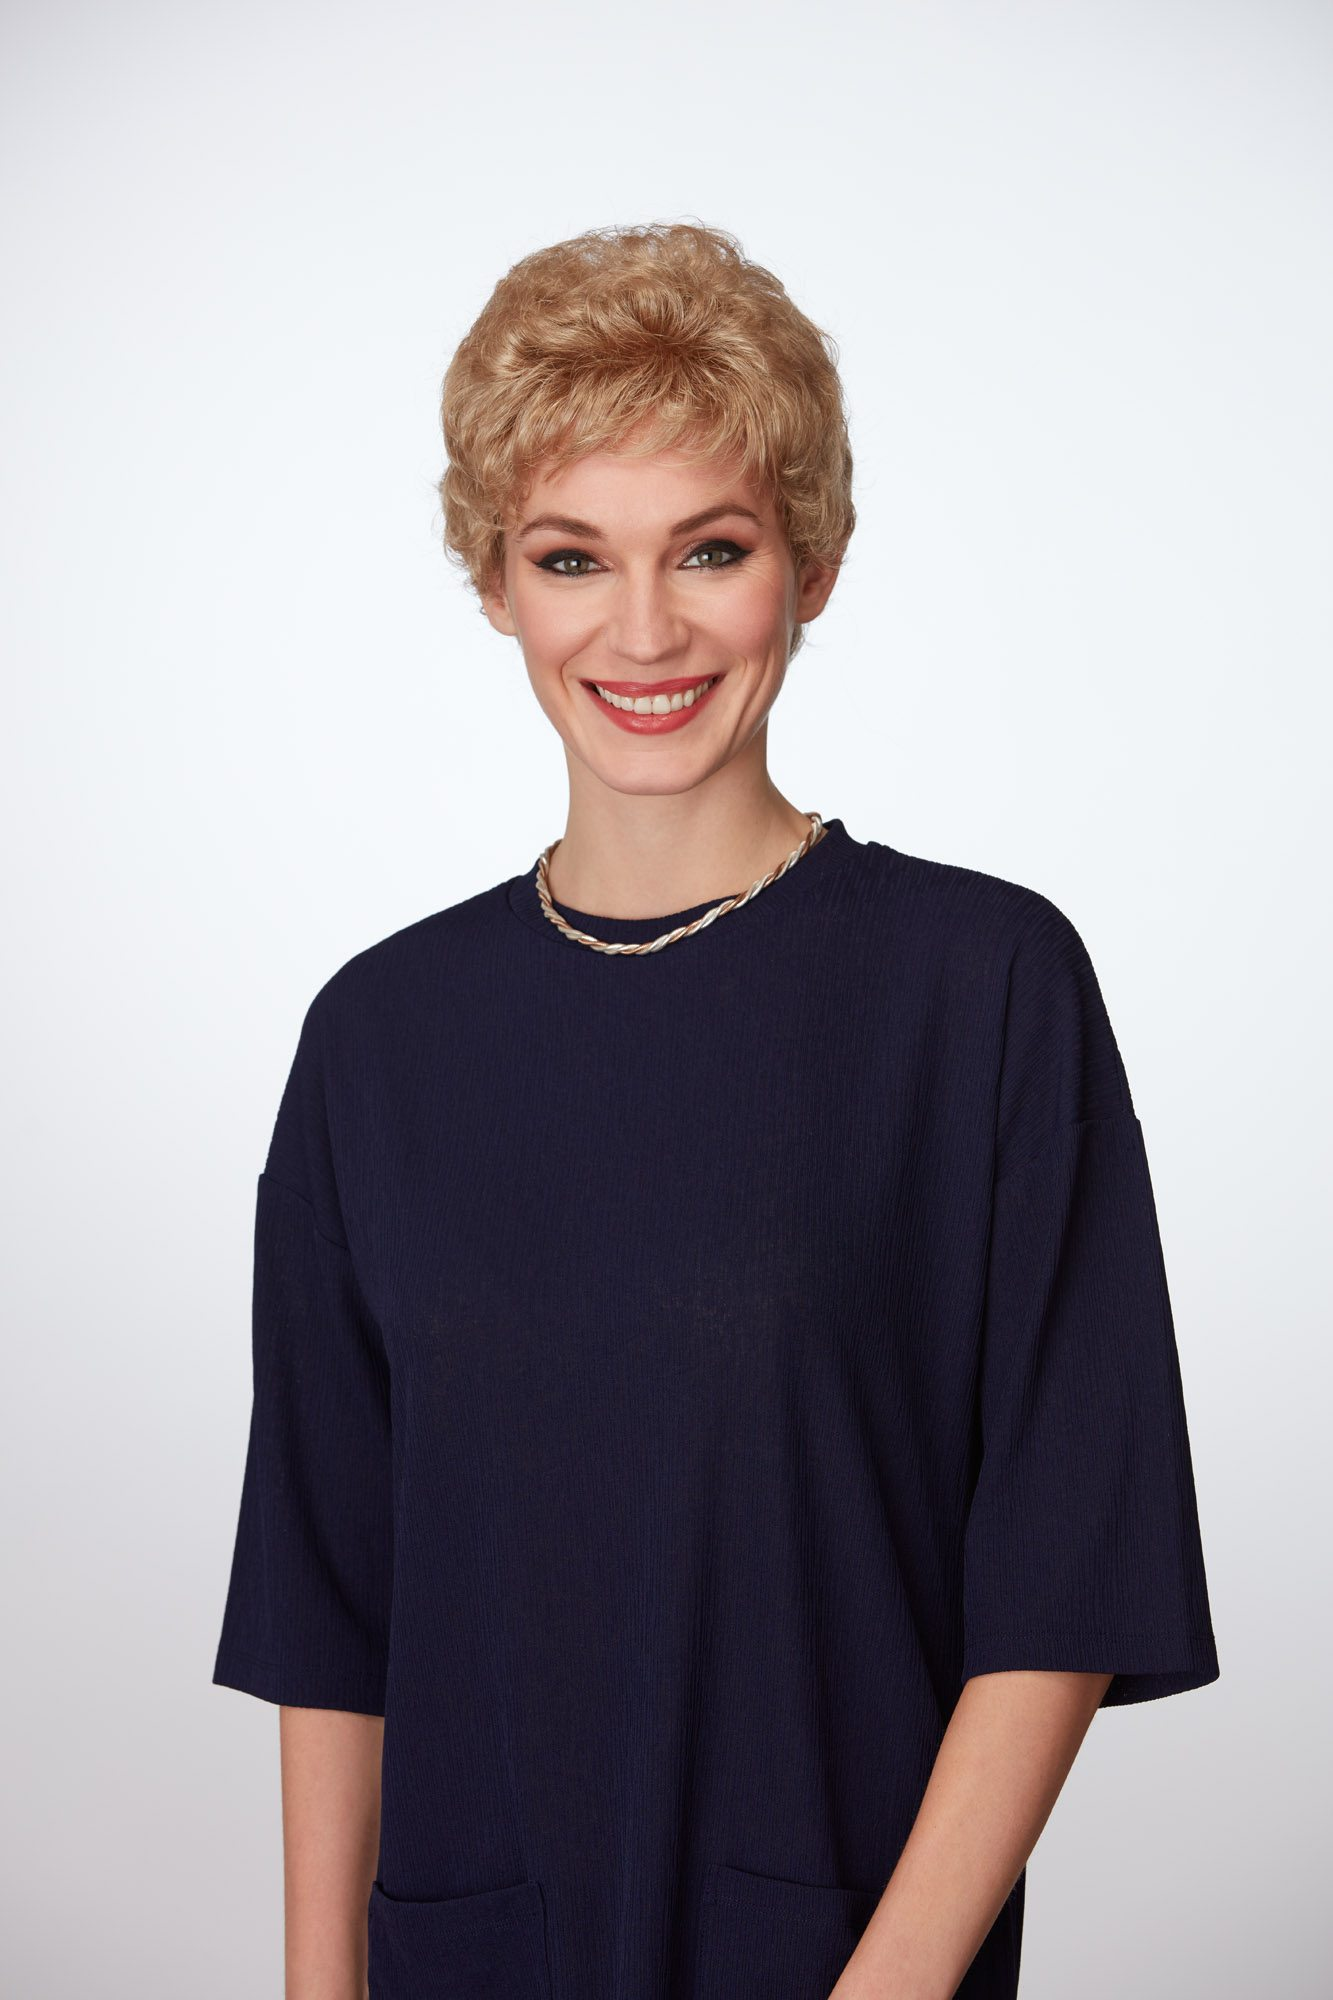 Compelling Wig Natural Image - image Nice-n-Neat_16_914 on https://purewigs.com